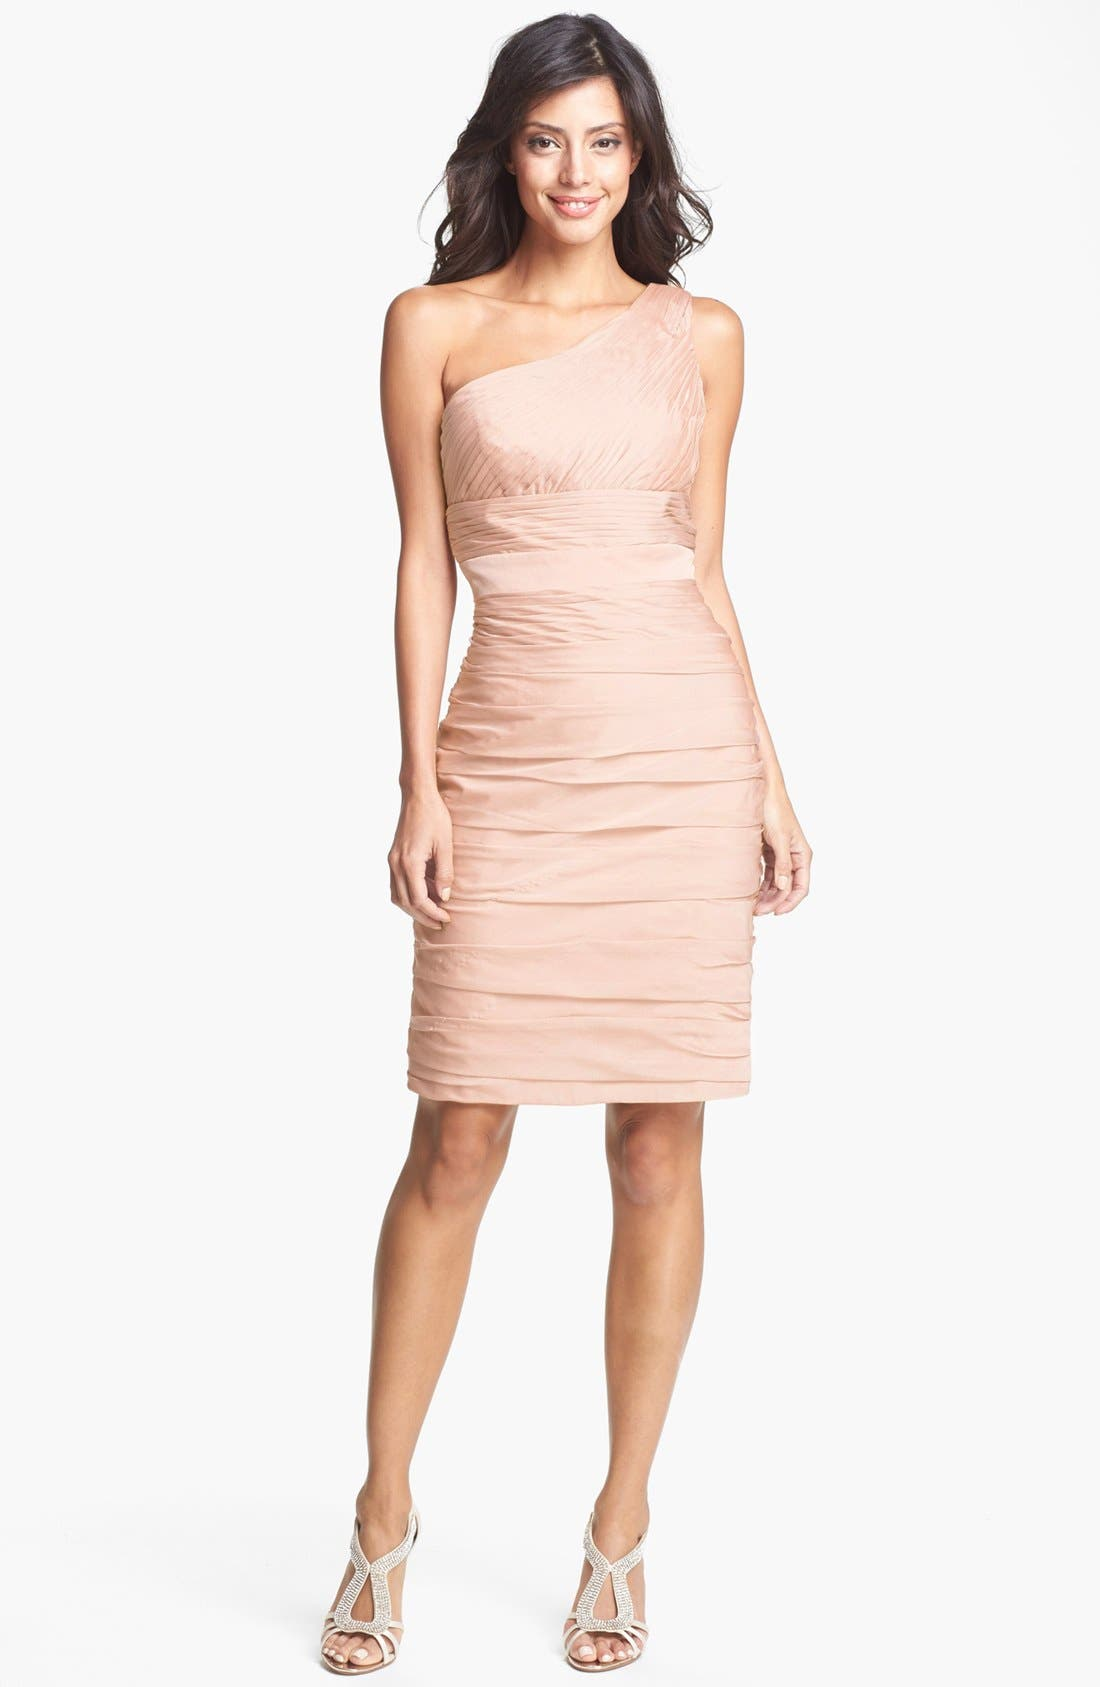 Alternate Image 1 Selected - ML Monique Lhuillier Bridesmaids Ruched One-Shoulder Sheath Dress (Nordstrom Exclusive)